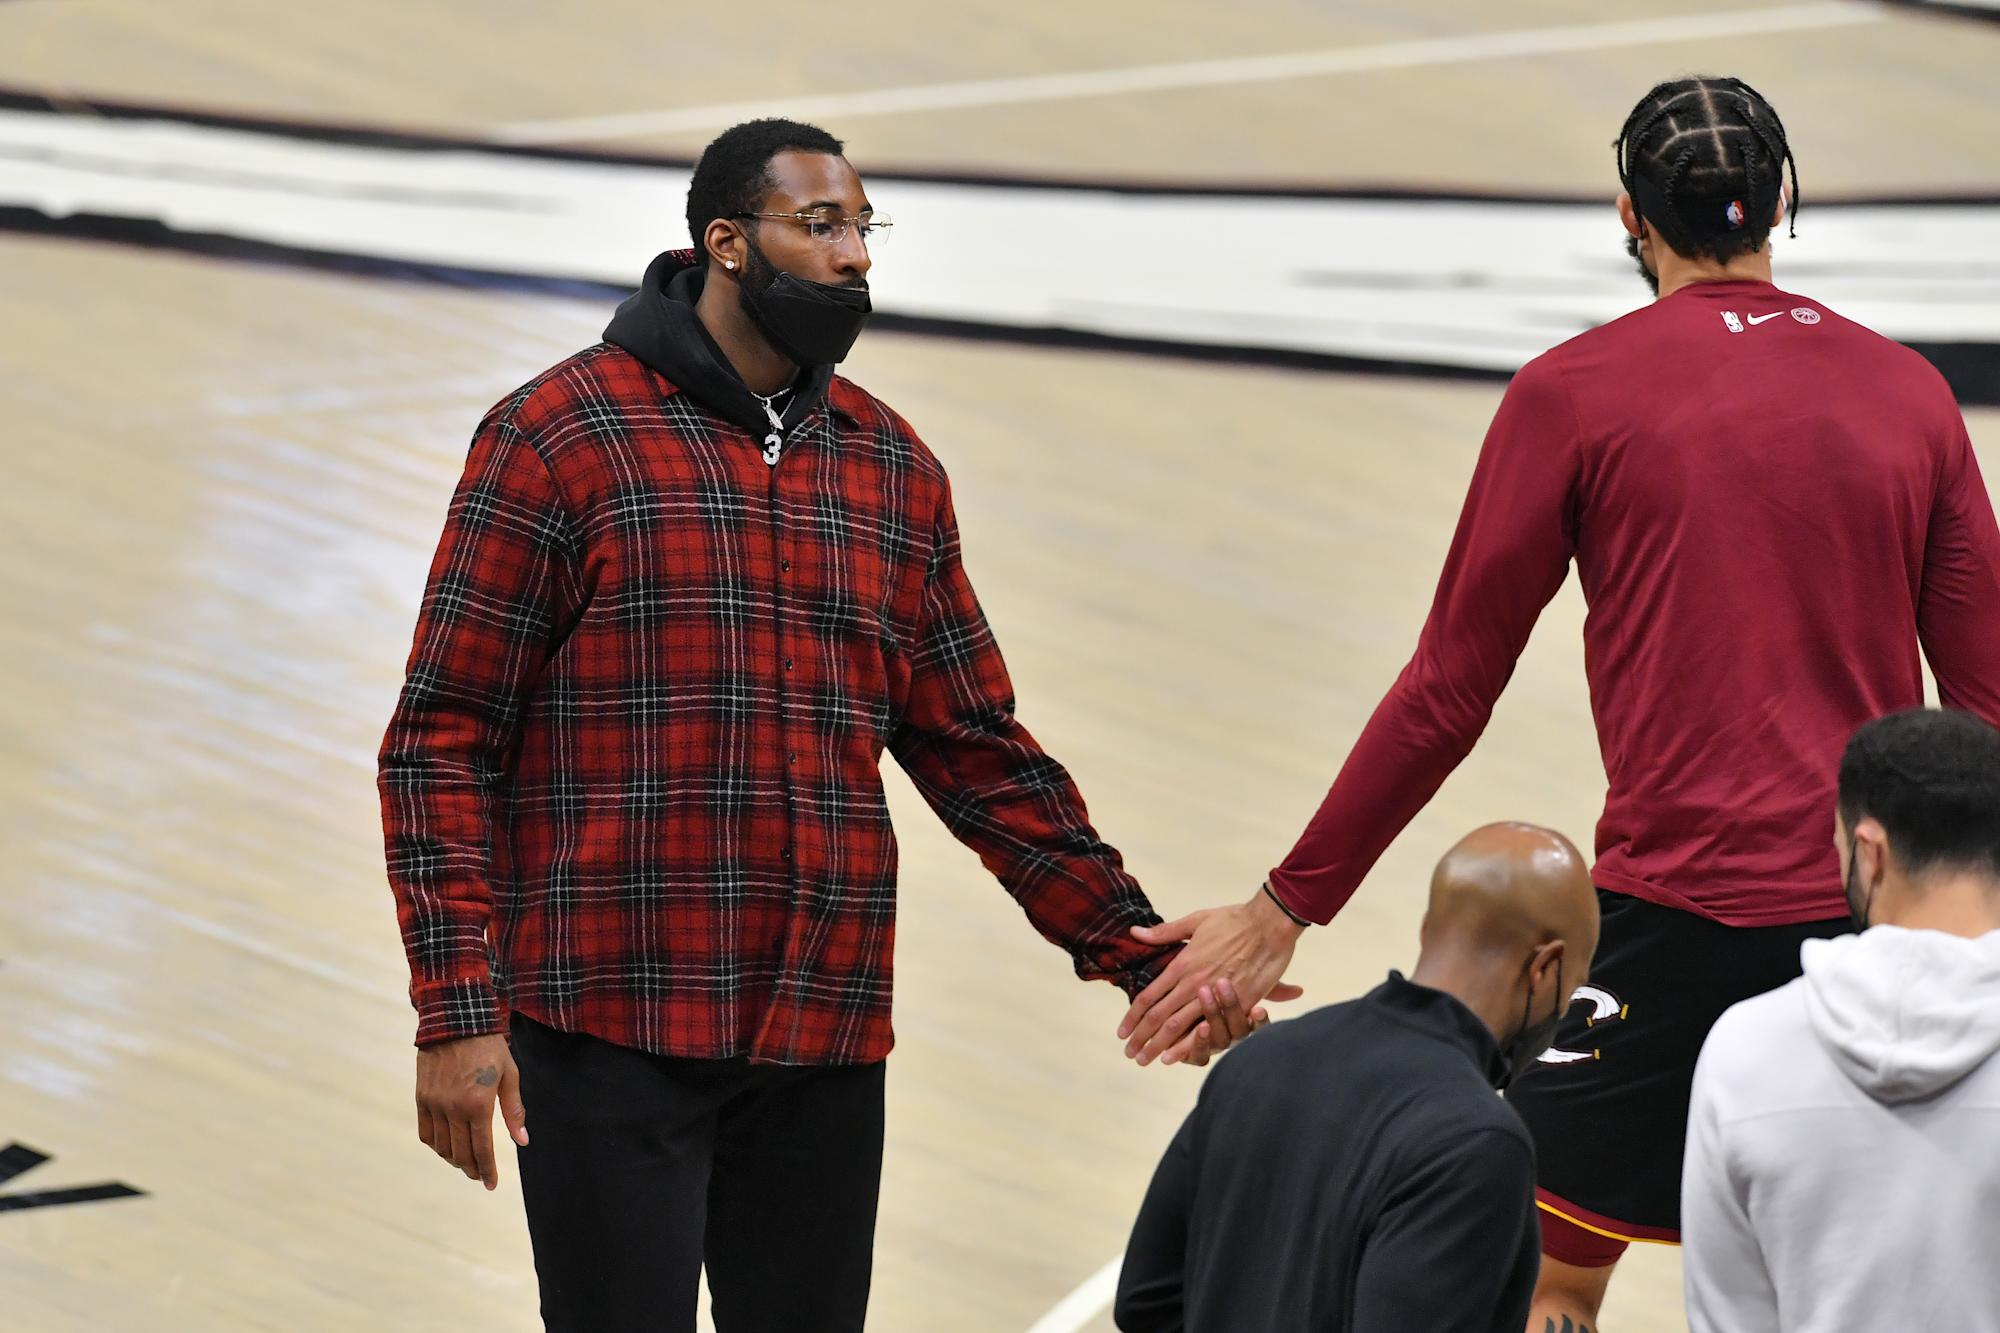 Sources: Andre Drummond will listen to pitches from multiple teams after Cavaliers buyout - Yahoo Entertainment